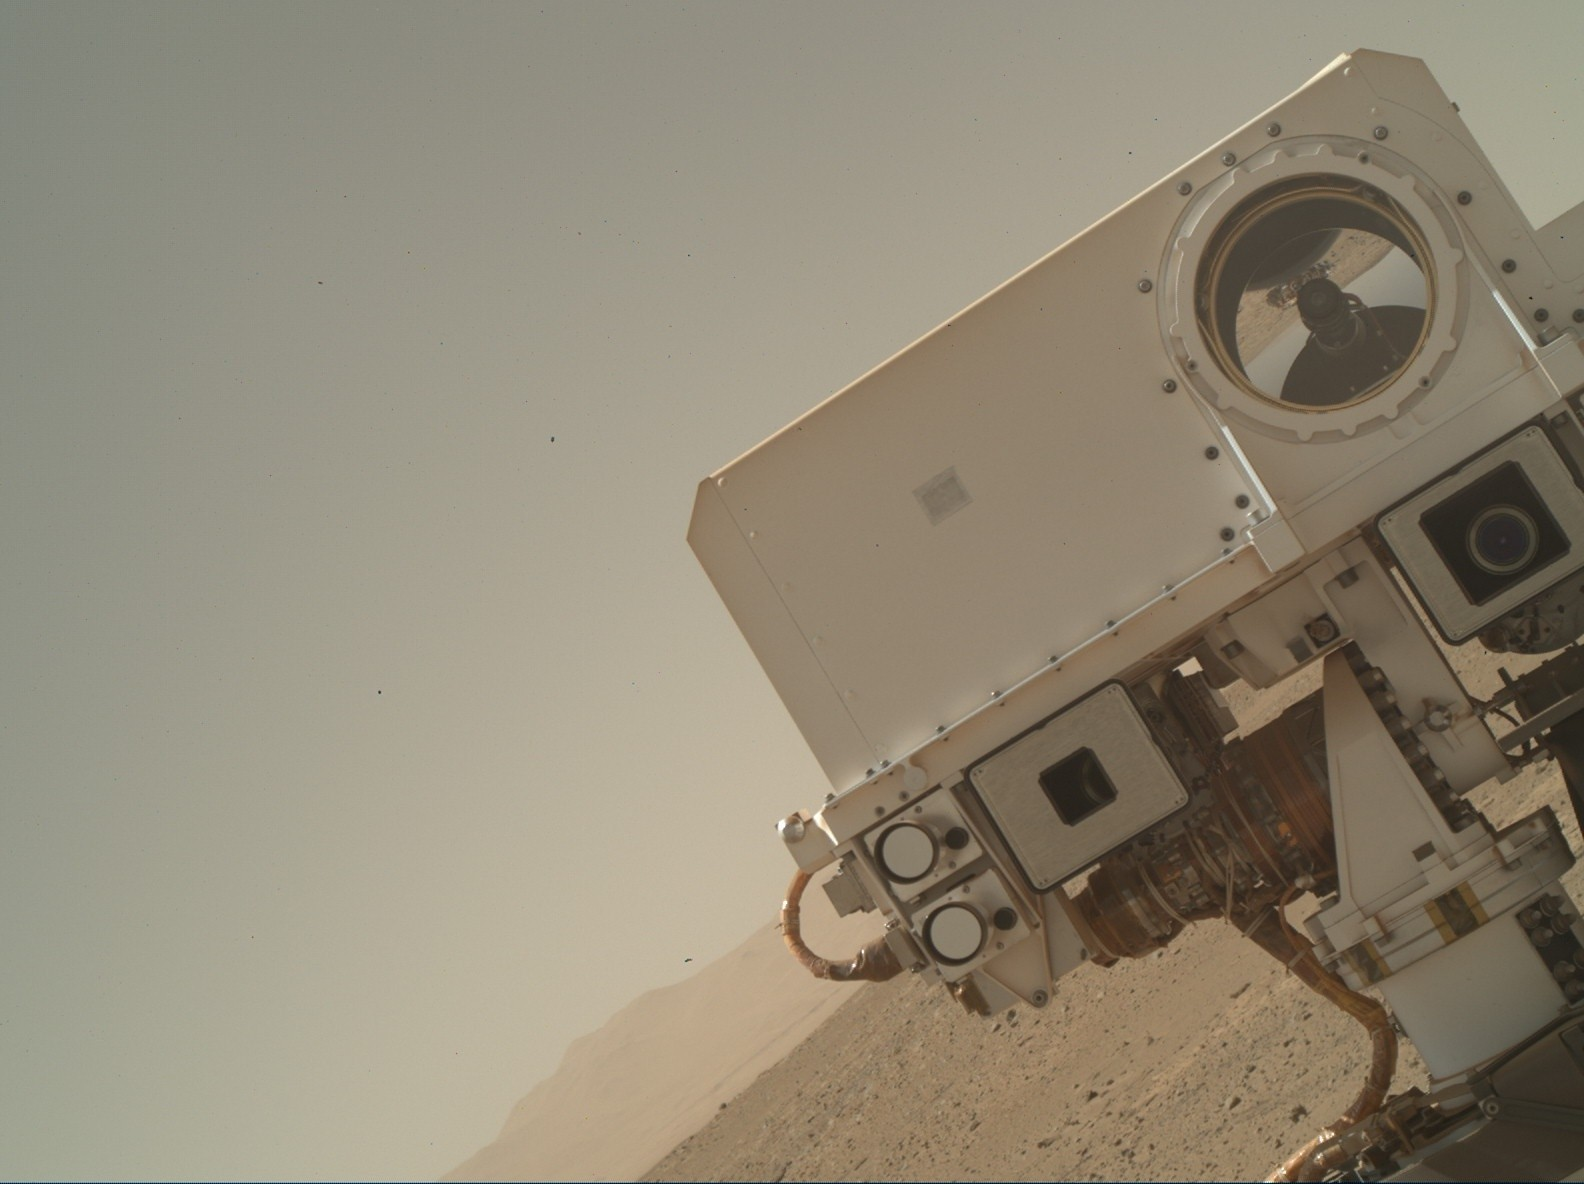 NASA Mars Curiosity rover